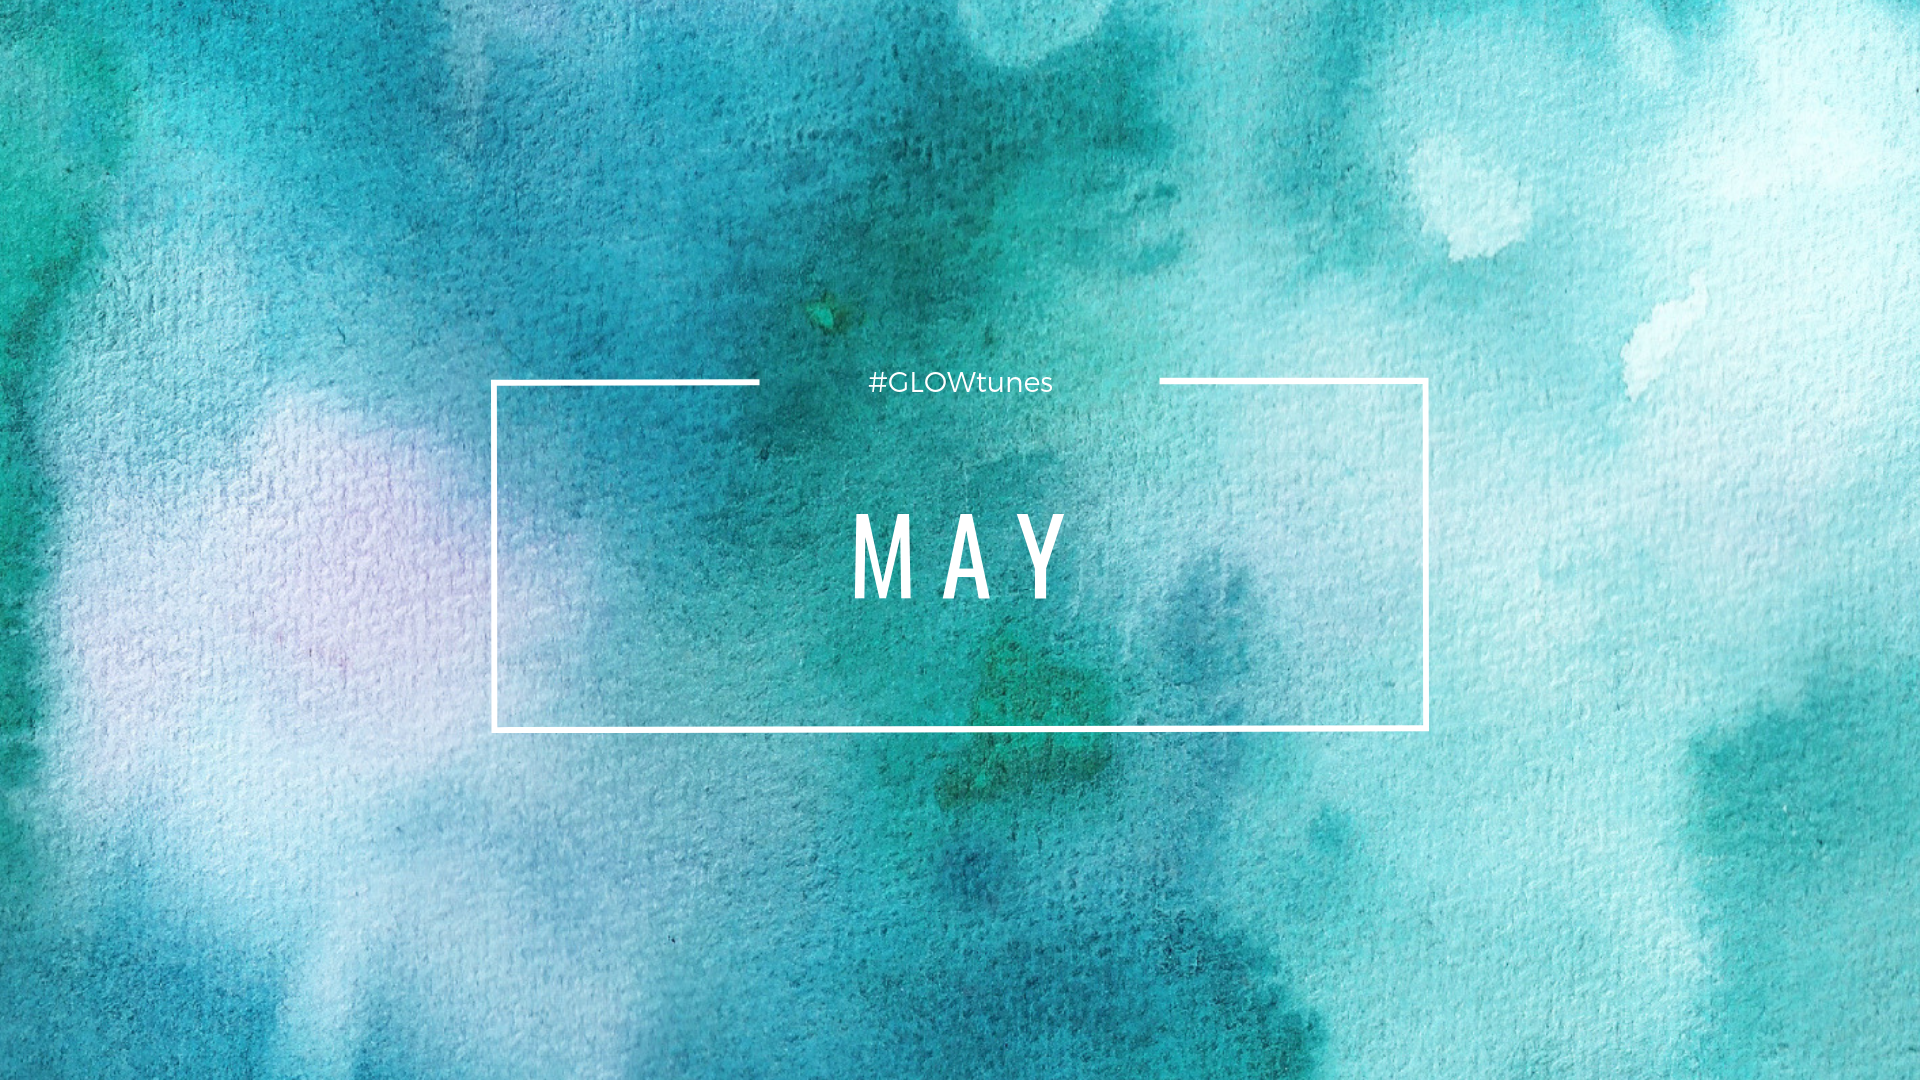 Here is the May 2019 #GLOWtunes playlist, for your listening pleasure. Straight from your glow girls. As music-obsessed chicks, we're excited to share with you a mix of tunes that we love. Some rap, chill, hip hop, electronic, and just good beats.  ENJOY xx  LISTEN HERE ::  https://open.spotify.com/user/howyouglow/playlist/7gsUmaA6osbhof2iAGtEuN?si=OLBi5T7pQc6aVX6hzYdMJg